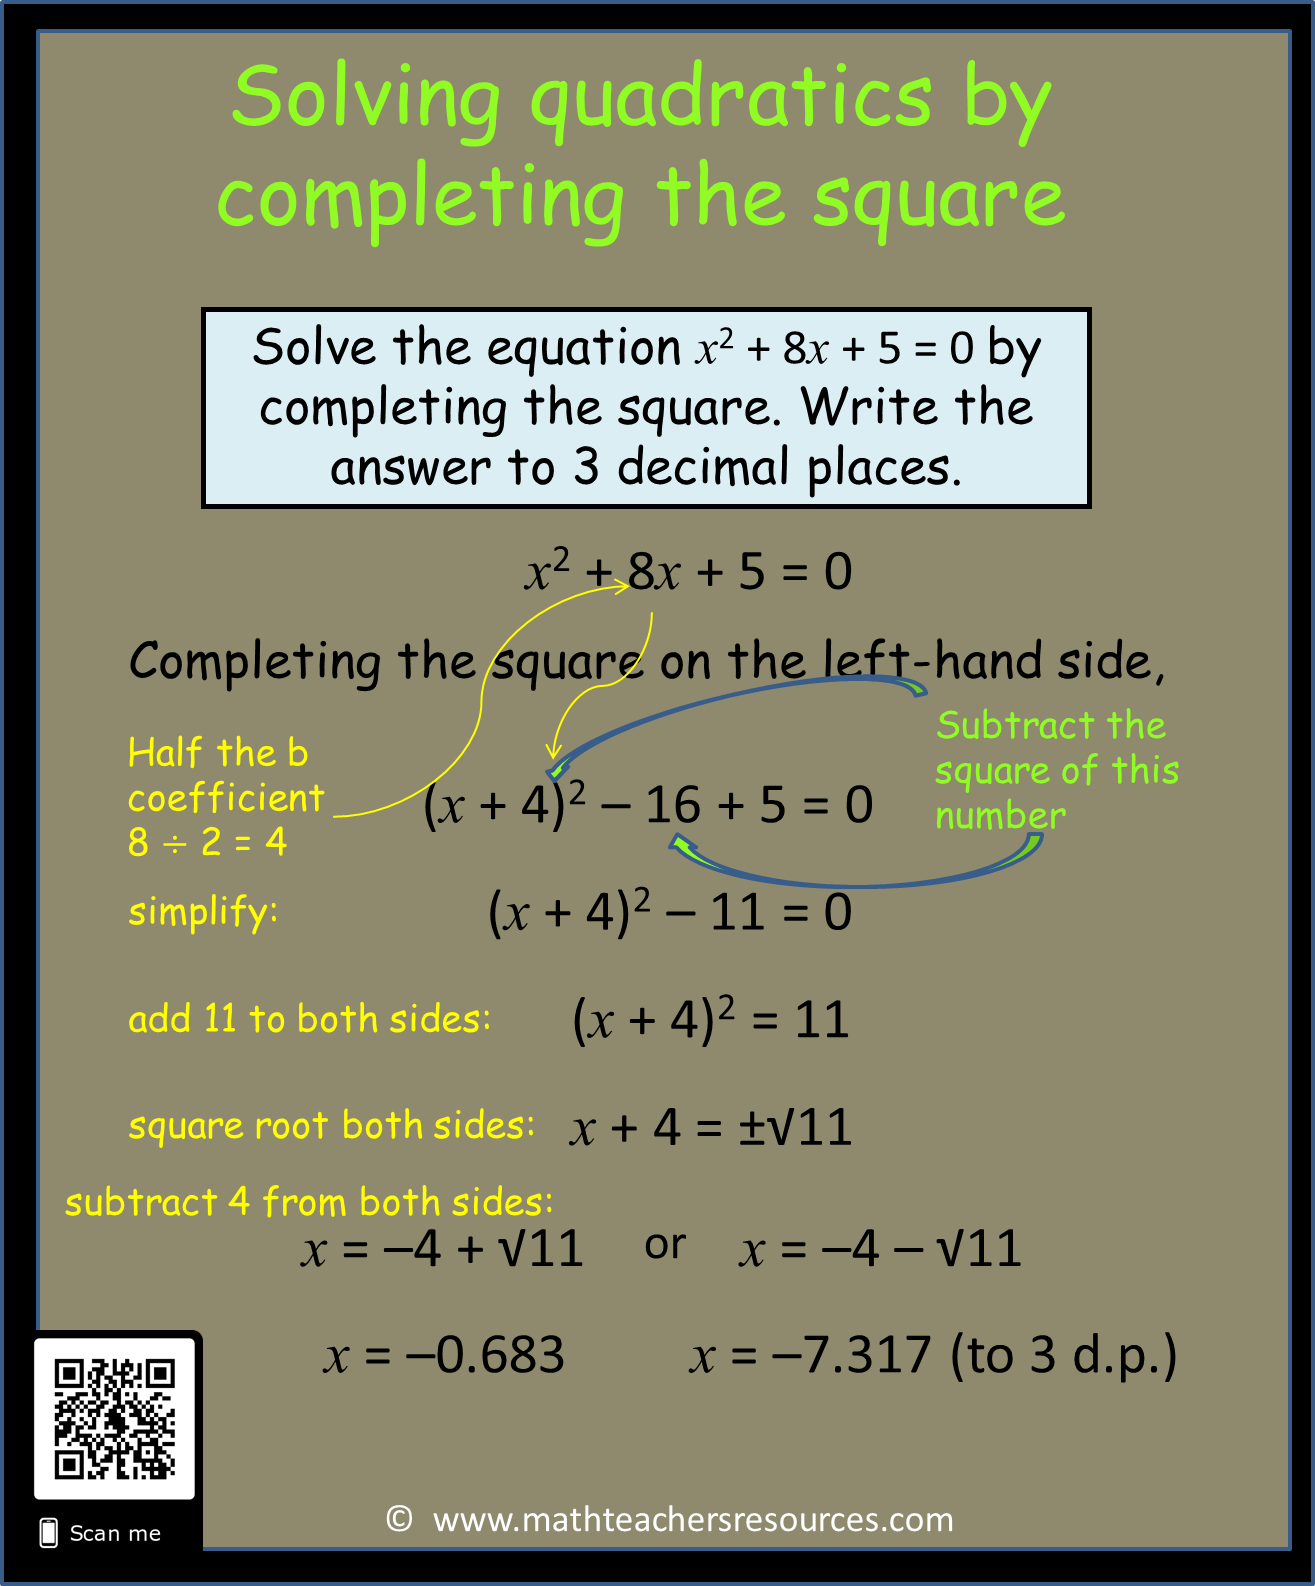 hight resolution of How to solve quadratic equations by completing the square   Math  Infographic   Solving quadratic equations